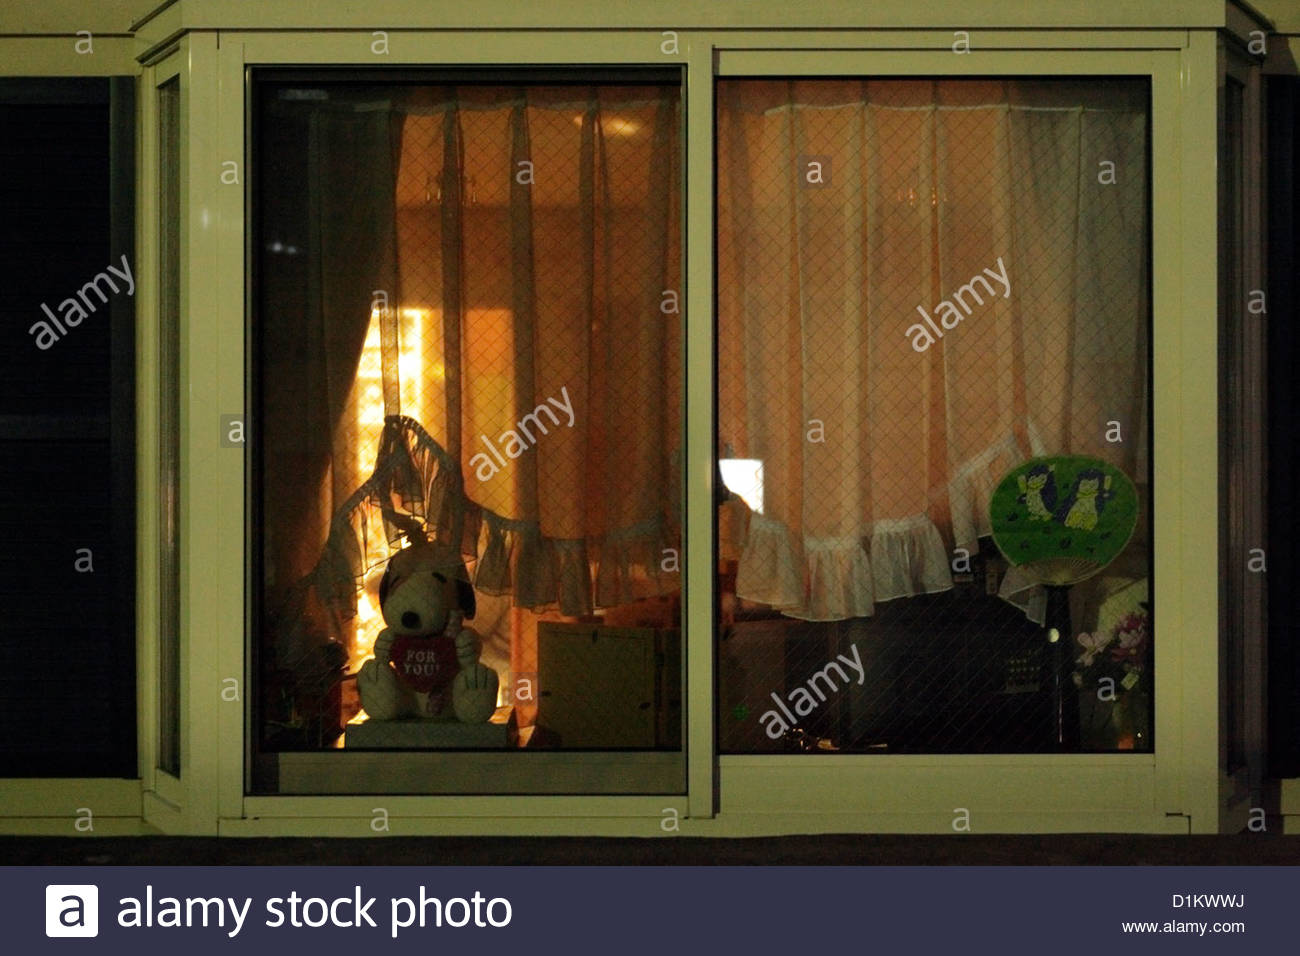 domestic house window seen from the outside during night time - Stock Image